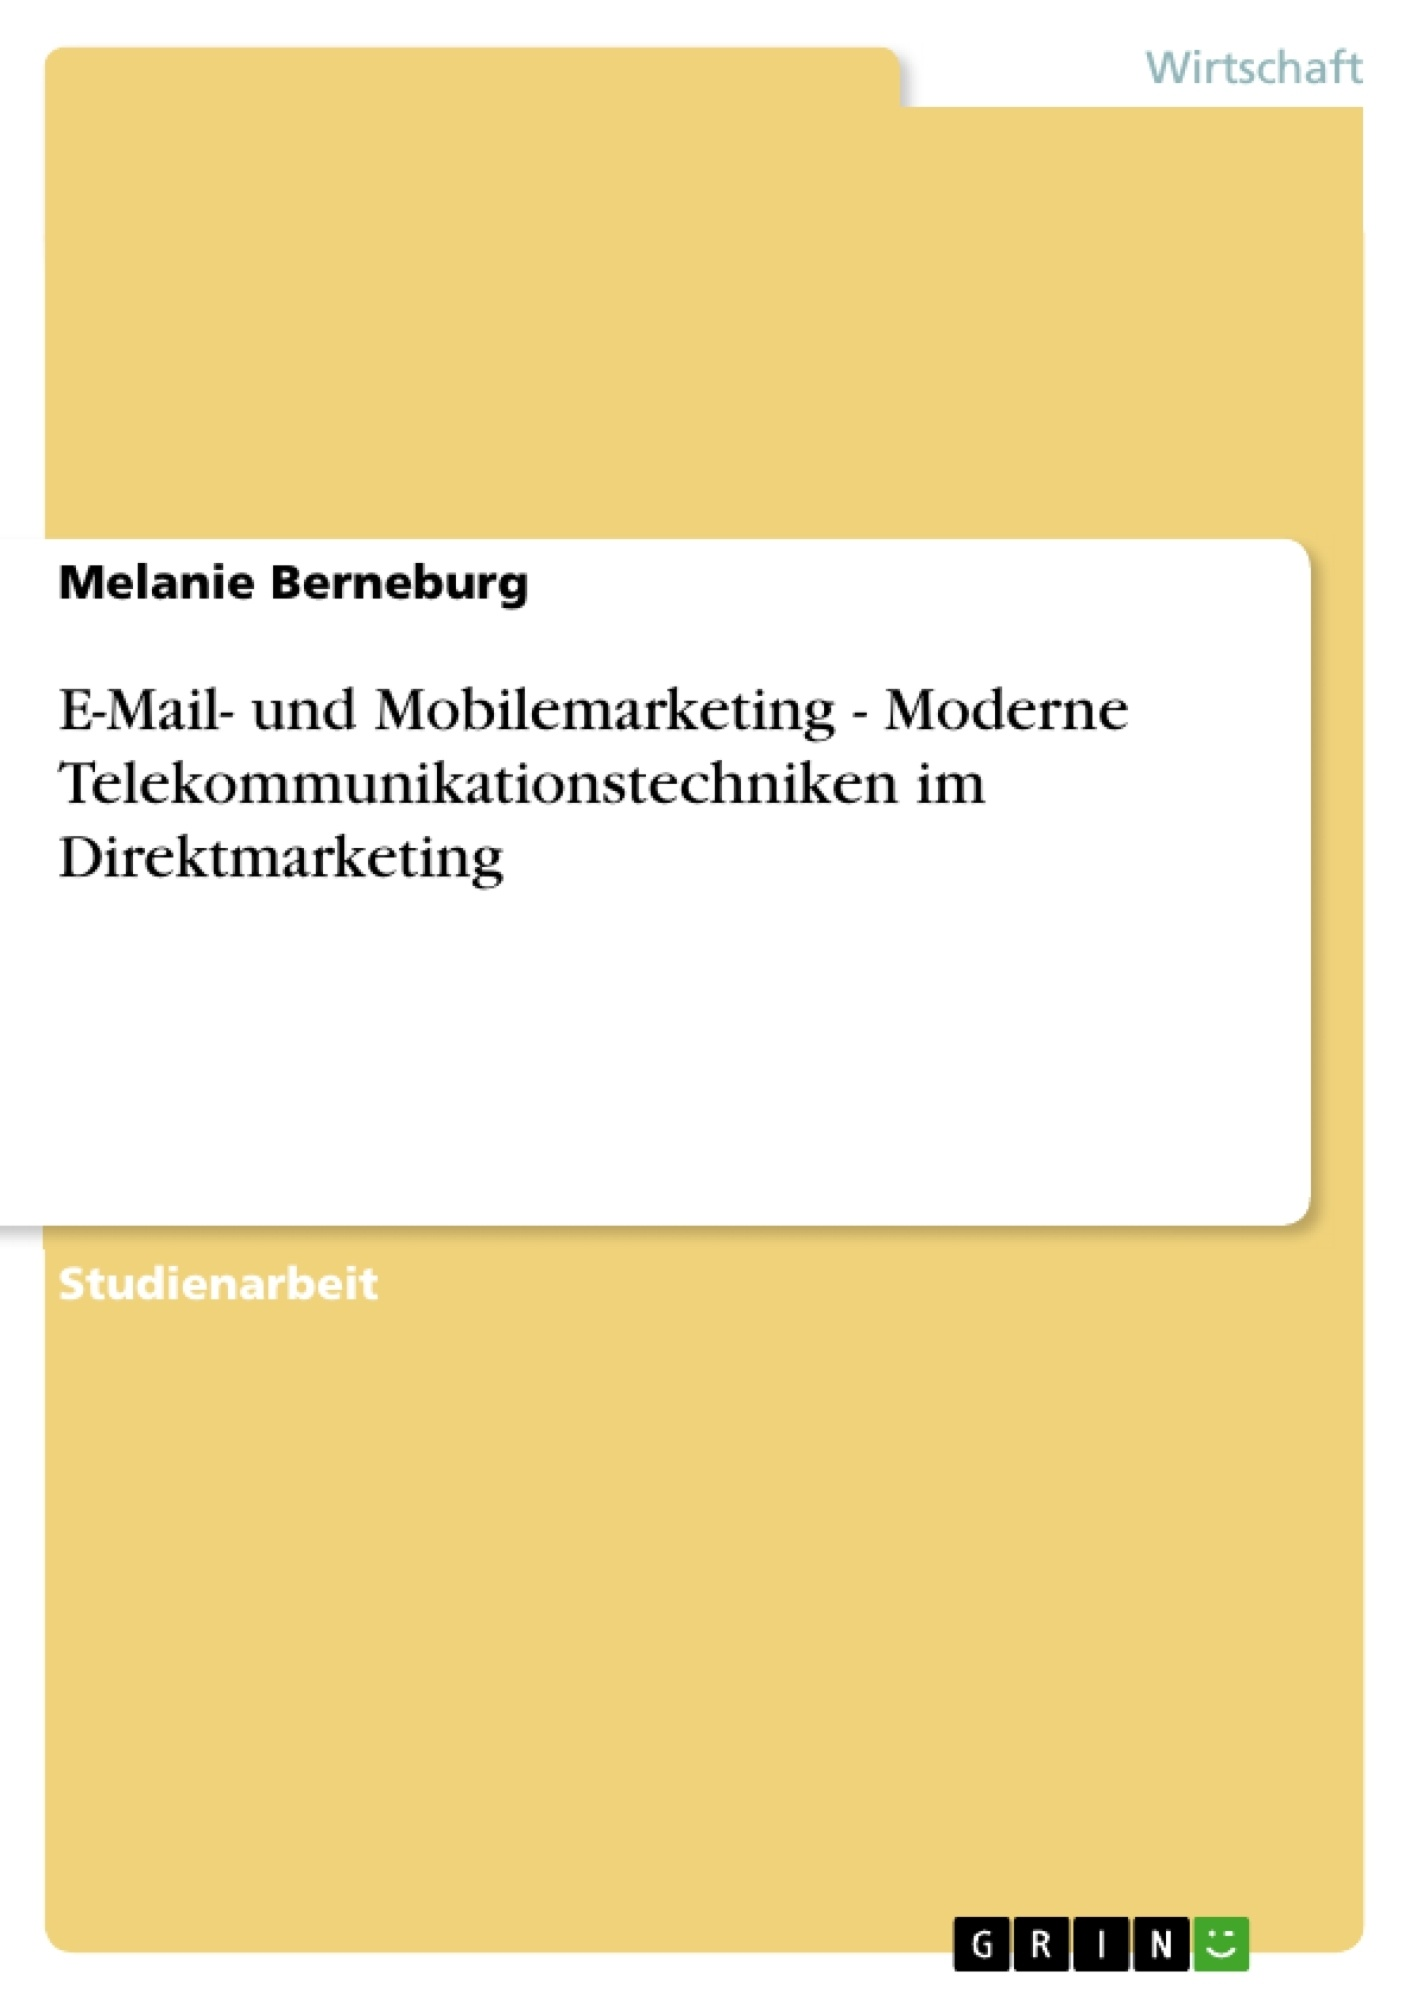 Titel: E-Mail- und Mobilemarketing - Moderne Telekommunikationstechniken im Direktmarketing